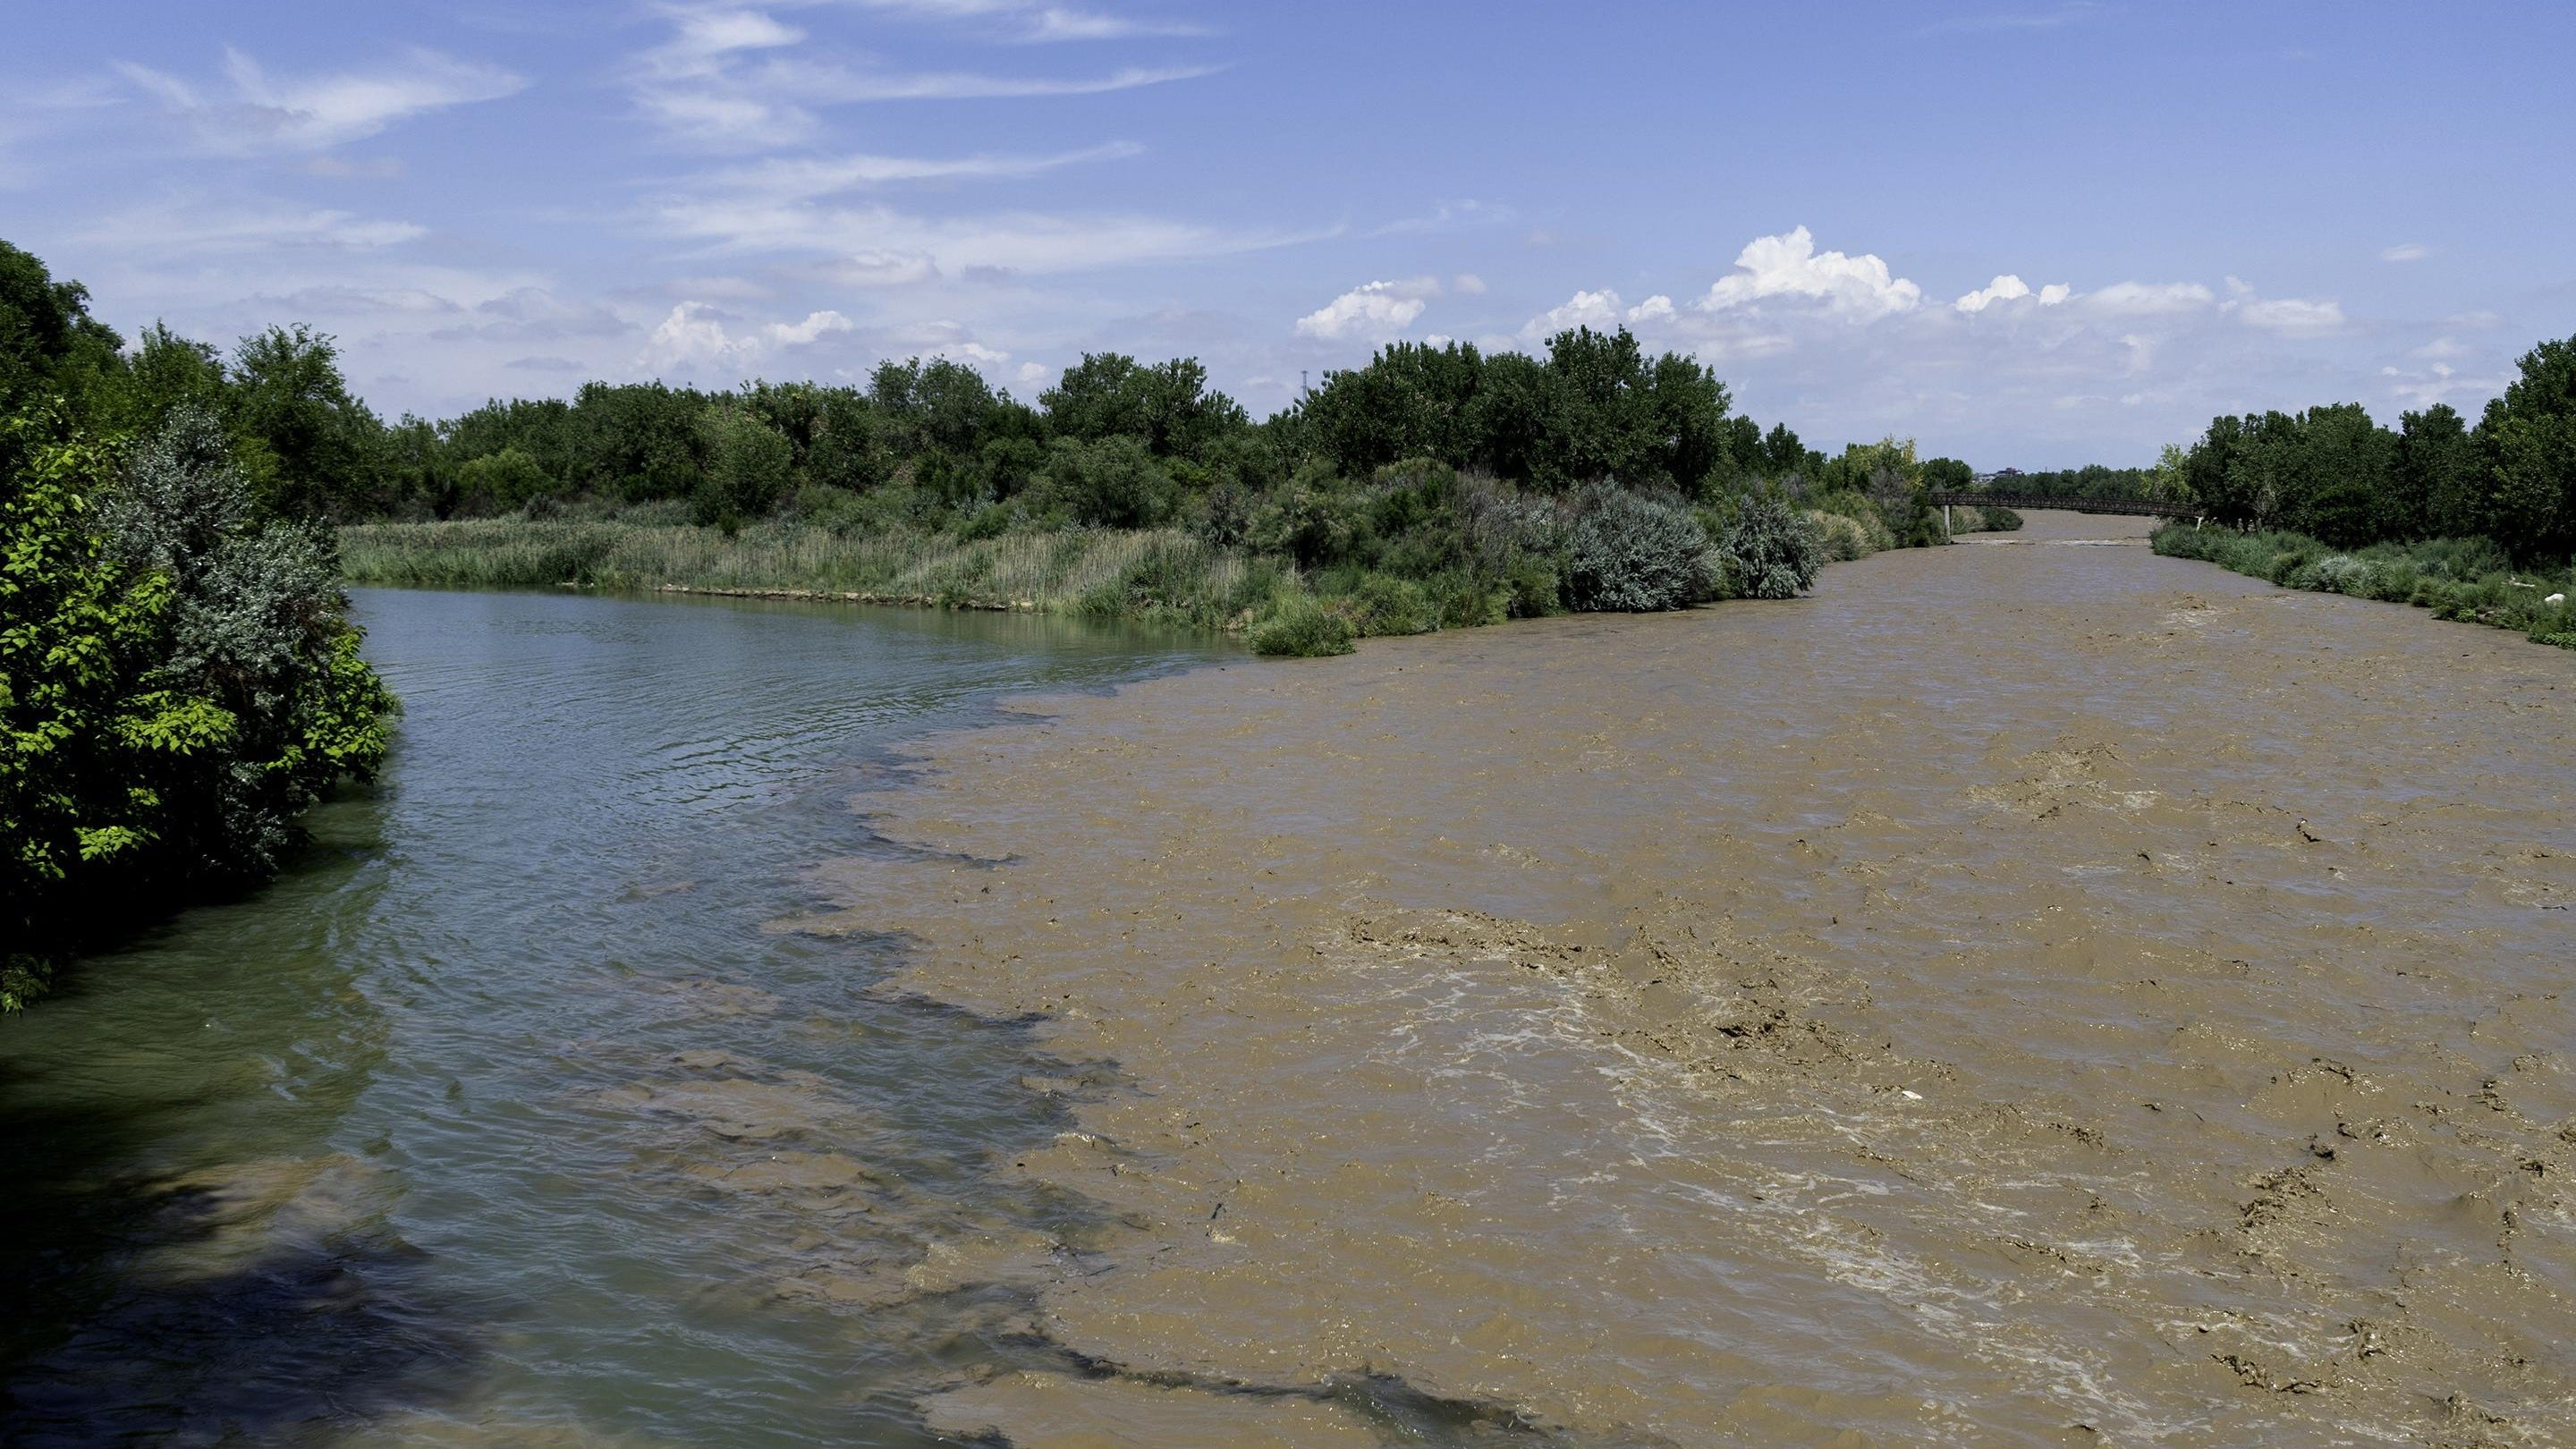 Here the Arkansas and Fountain Creek meet, showcasing their differences. That city, government clean water agencies, Pueblo County and a lower valley water conservancy district have decided how to solve their dispute in order to improve the quality of water flowing in the creek from the city into Pueblo County and eastward down the river.